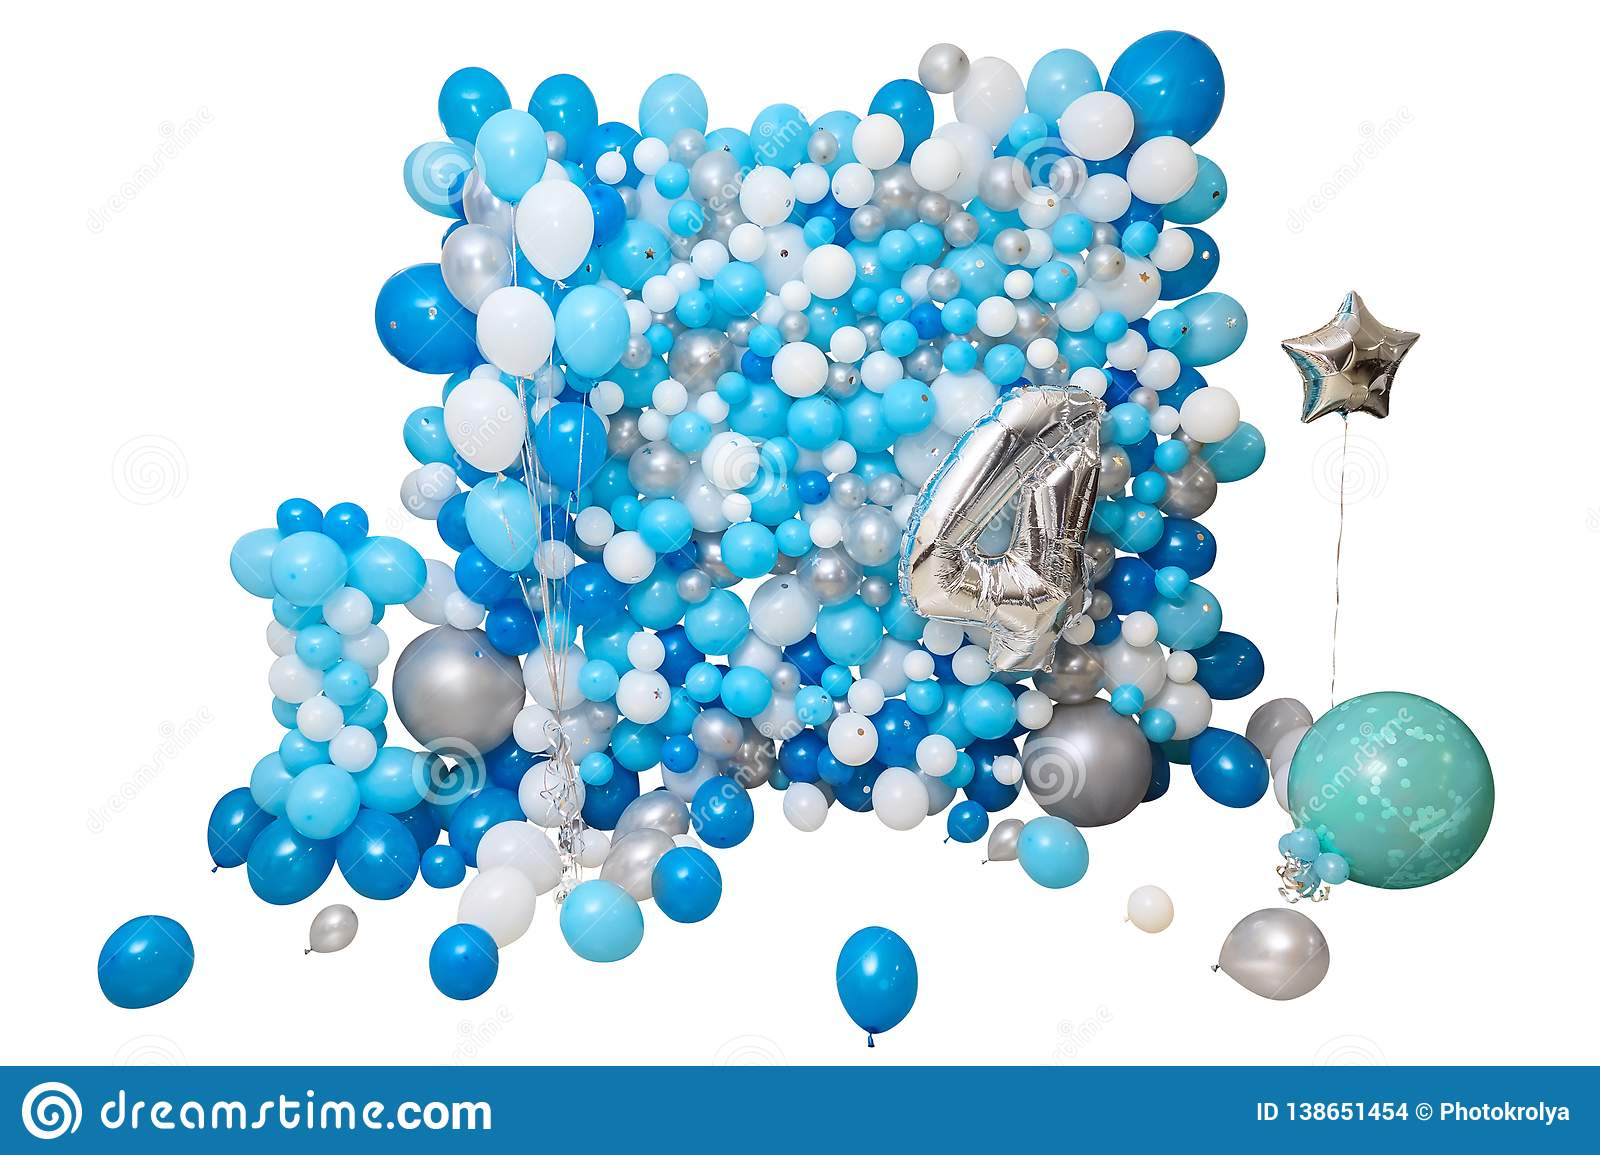 Blue And White Balloons Isolated On White Background Stock